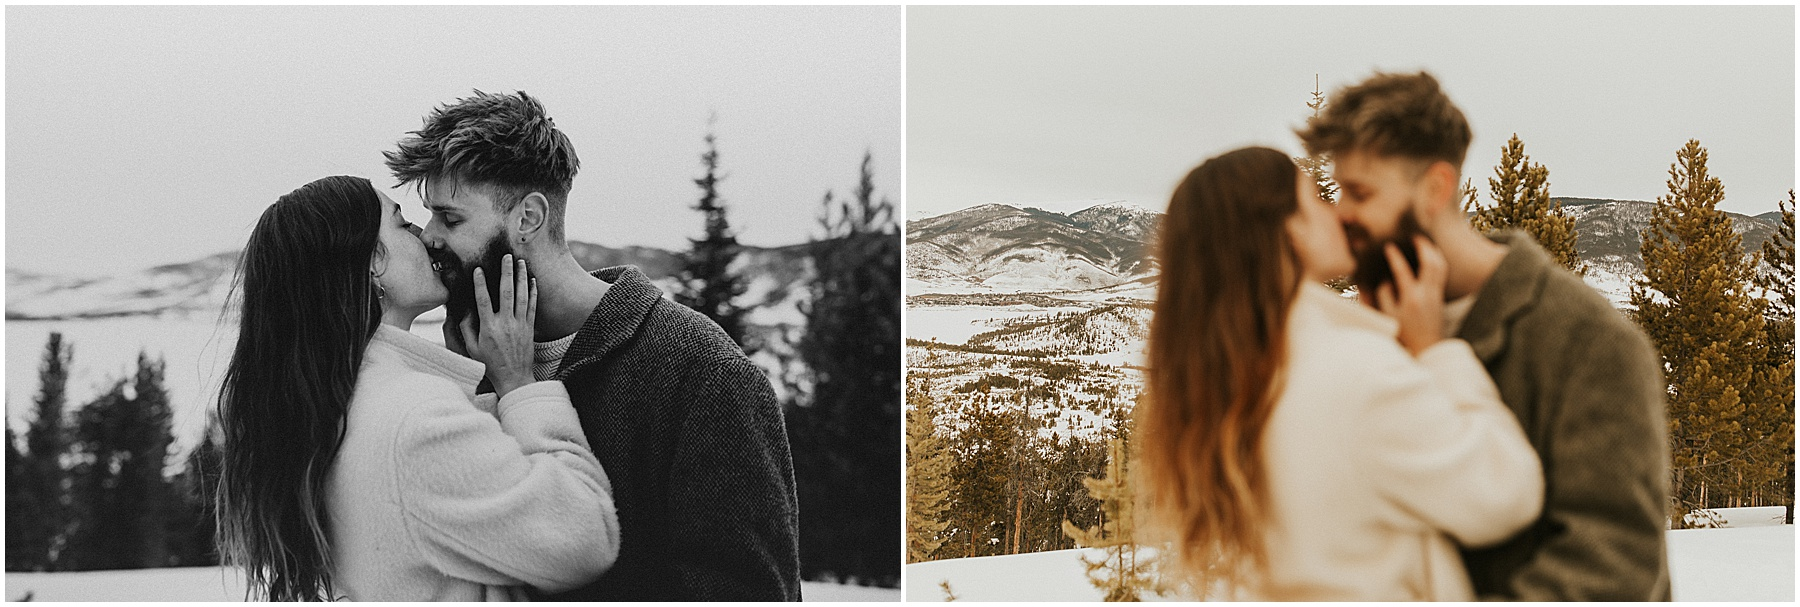 Proposal and engagement session in Breckenridge, Colorado Saphire Point_0411.jpg